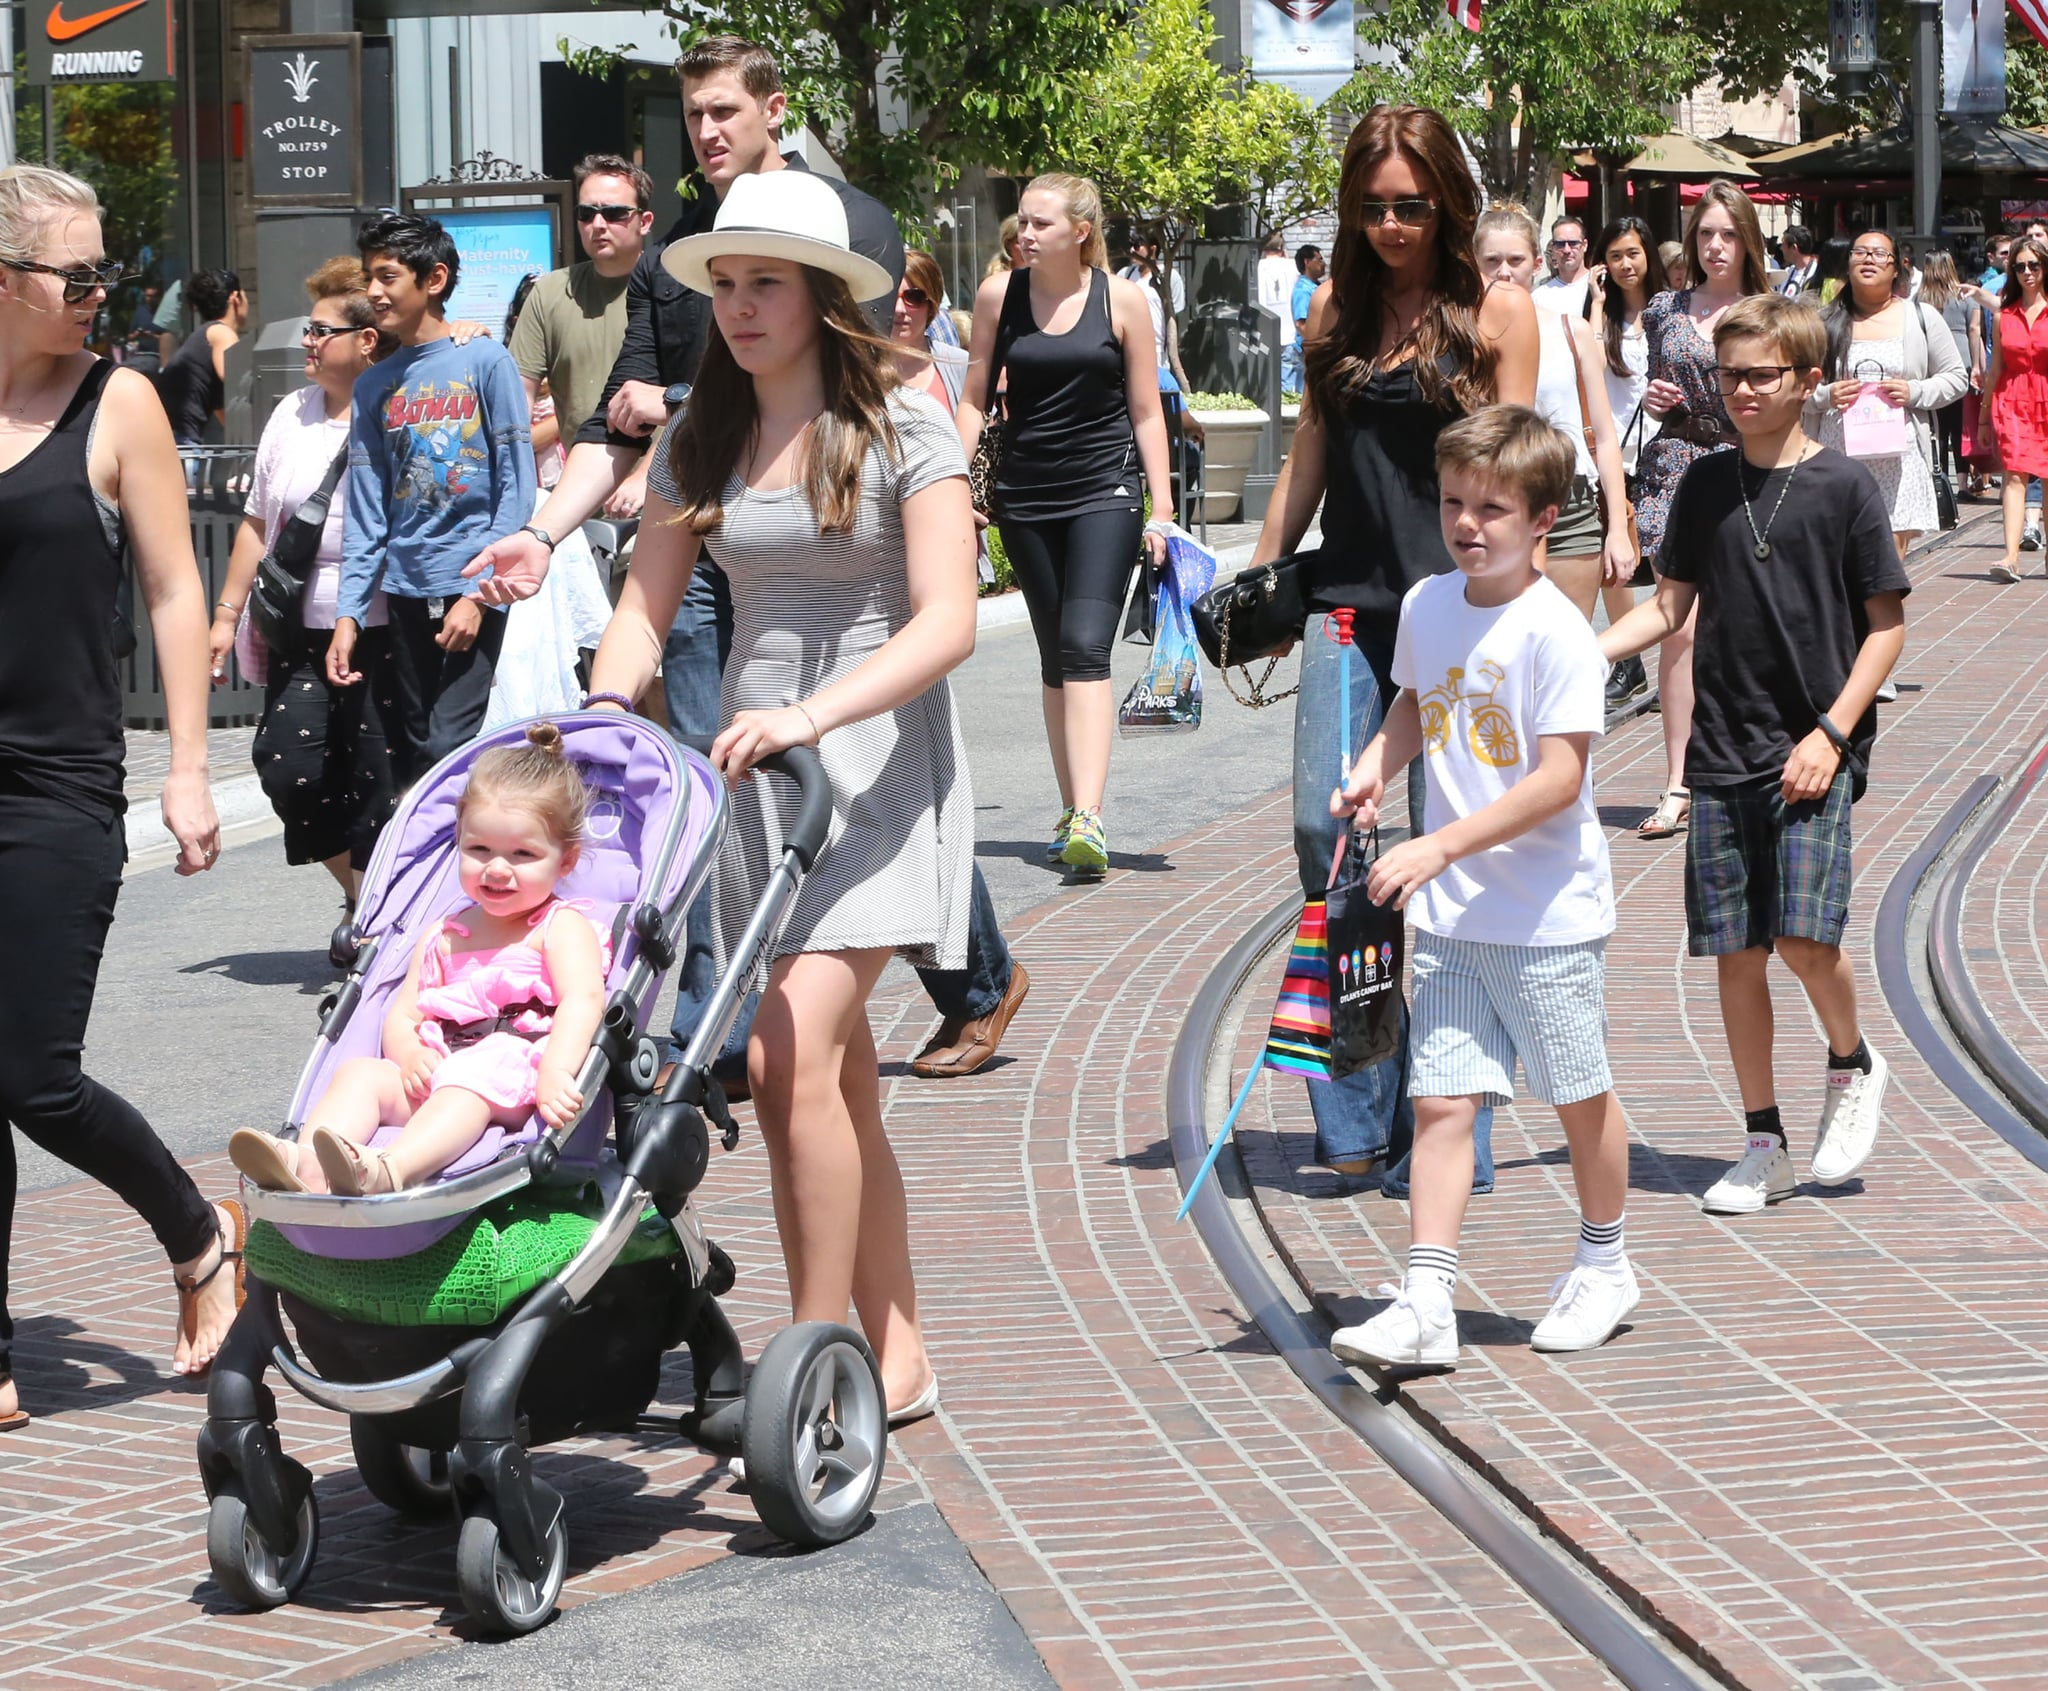 Victoria Beckham walked through The Grove shopping mall in LA with her kids.